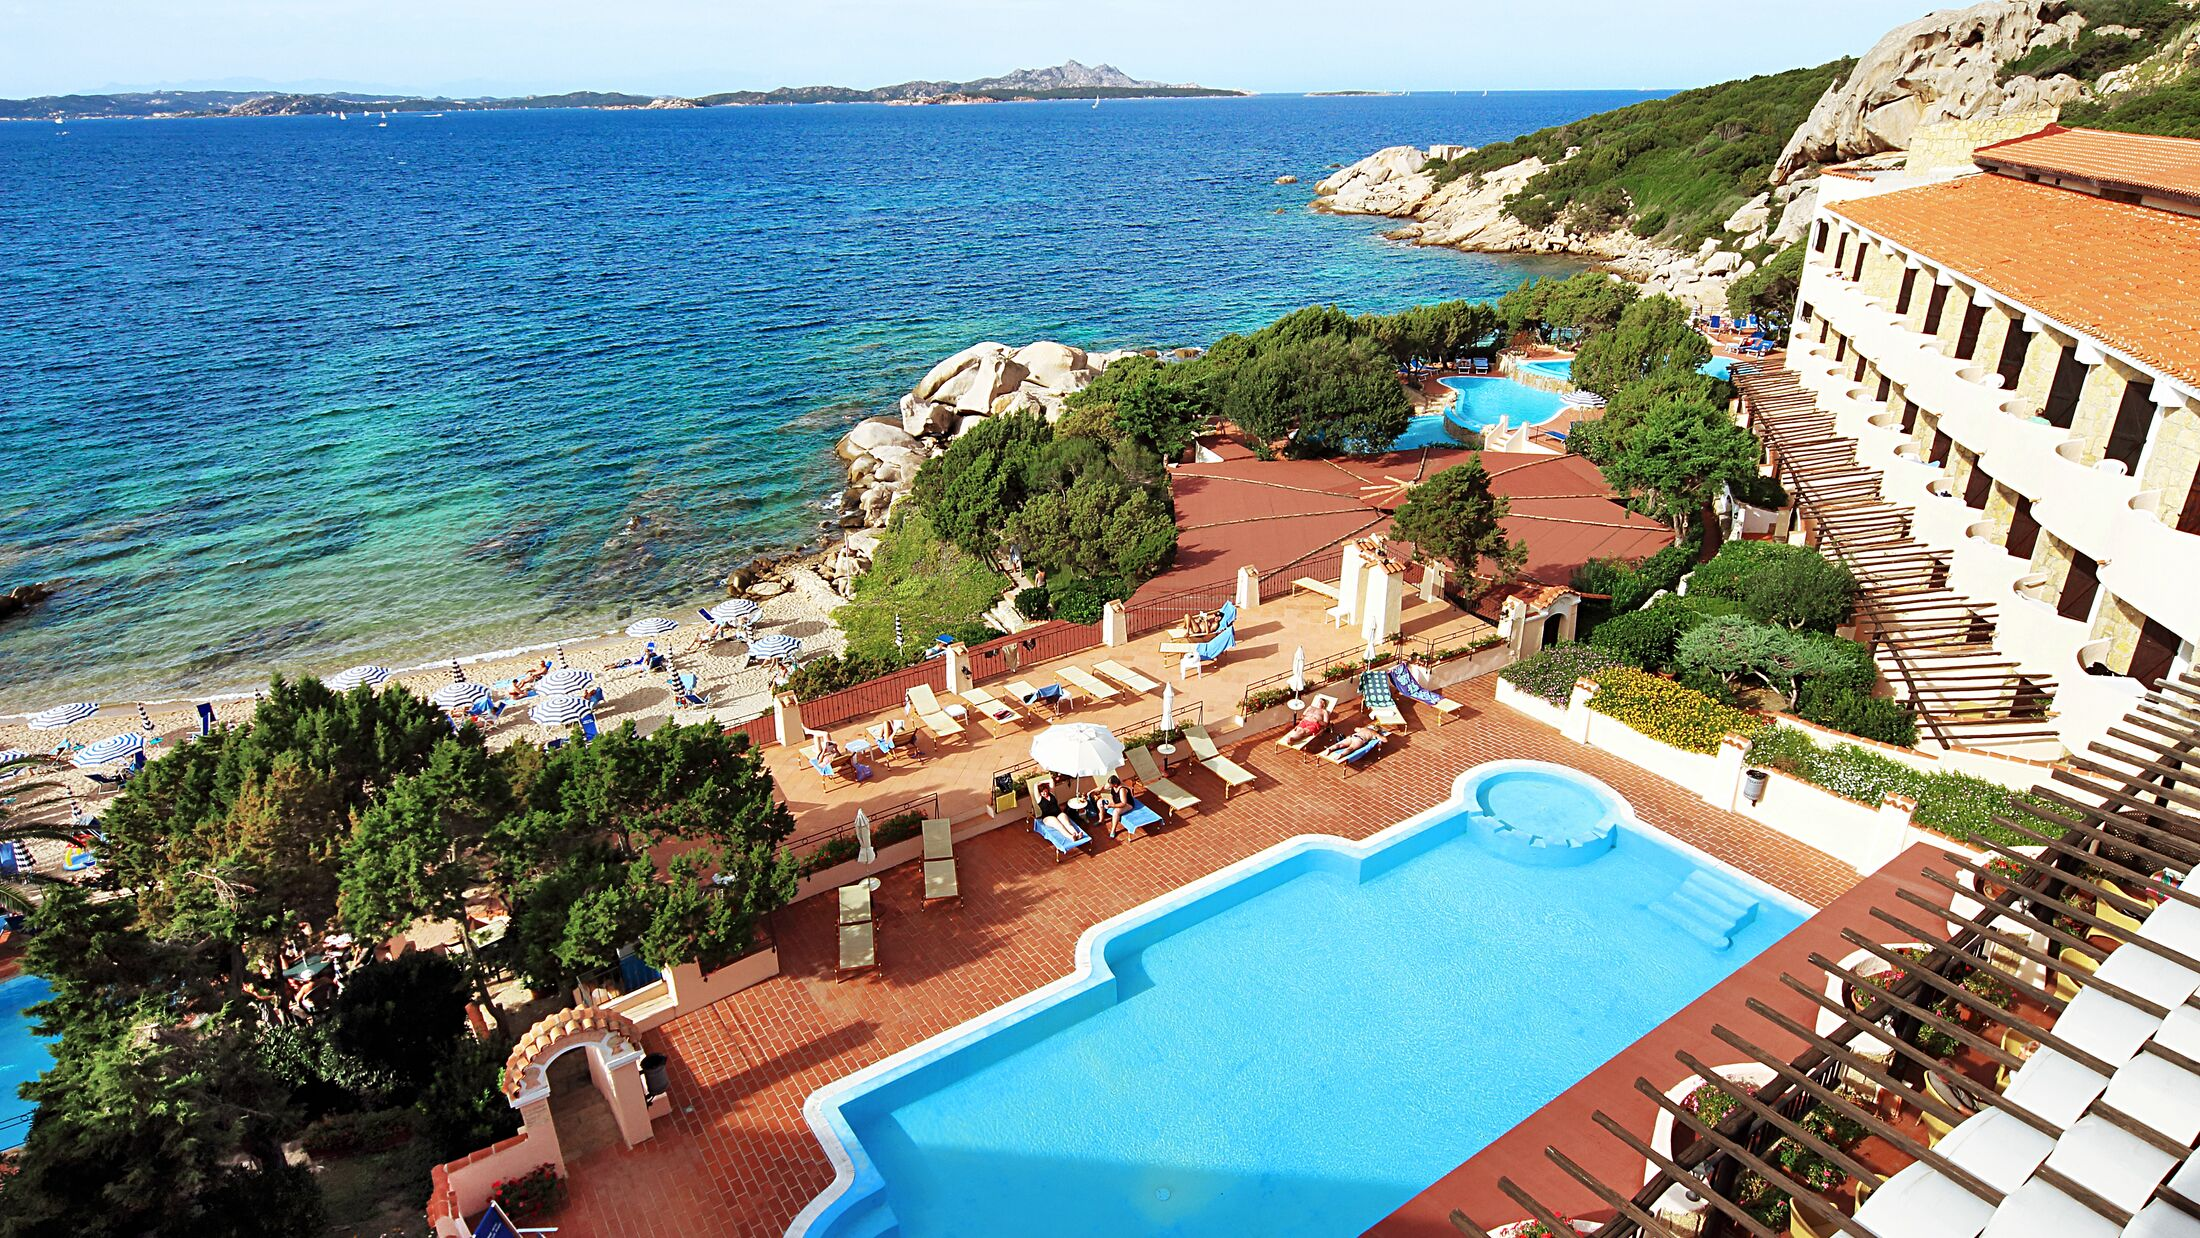 Grand-Smeraldo-Beach-Property-View-002-115099-Hybris